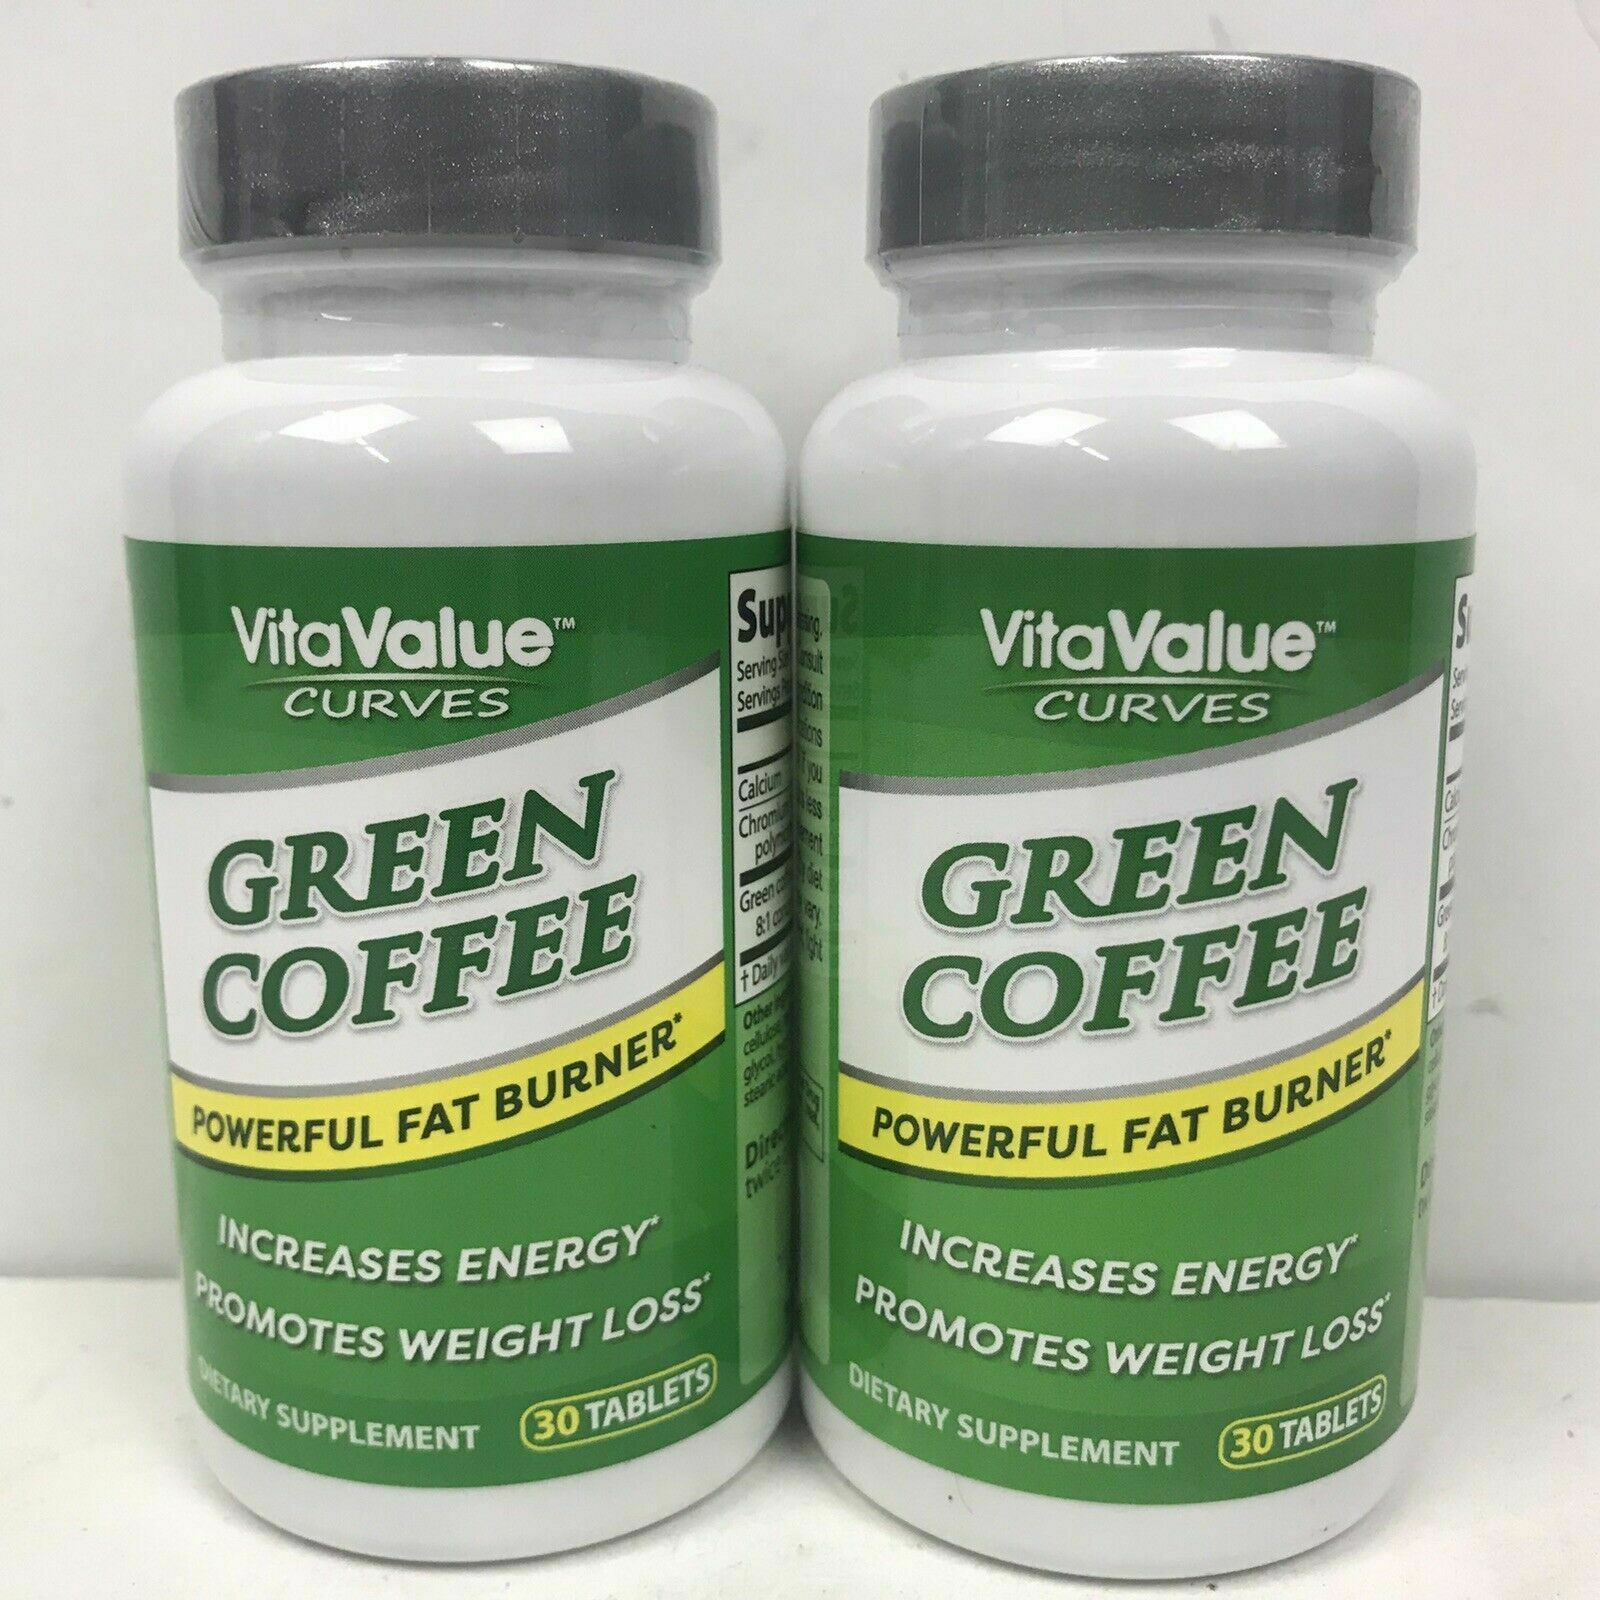 (2) VitaValue Curves Green Coffee Weight Loss Energy Dietary Supplement 4/21